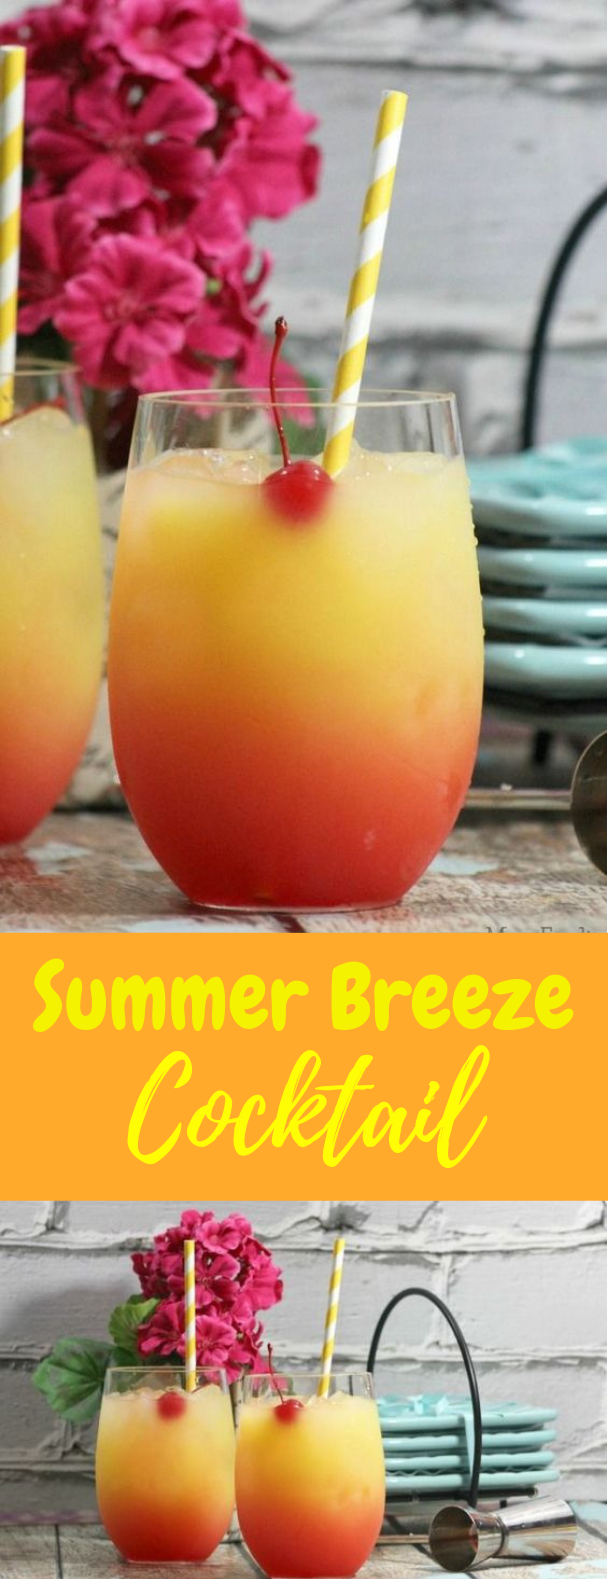 Summer Breeze Cocktail Recipe #Summer #Cocktail